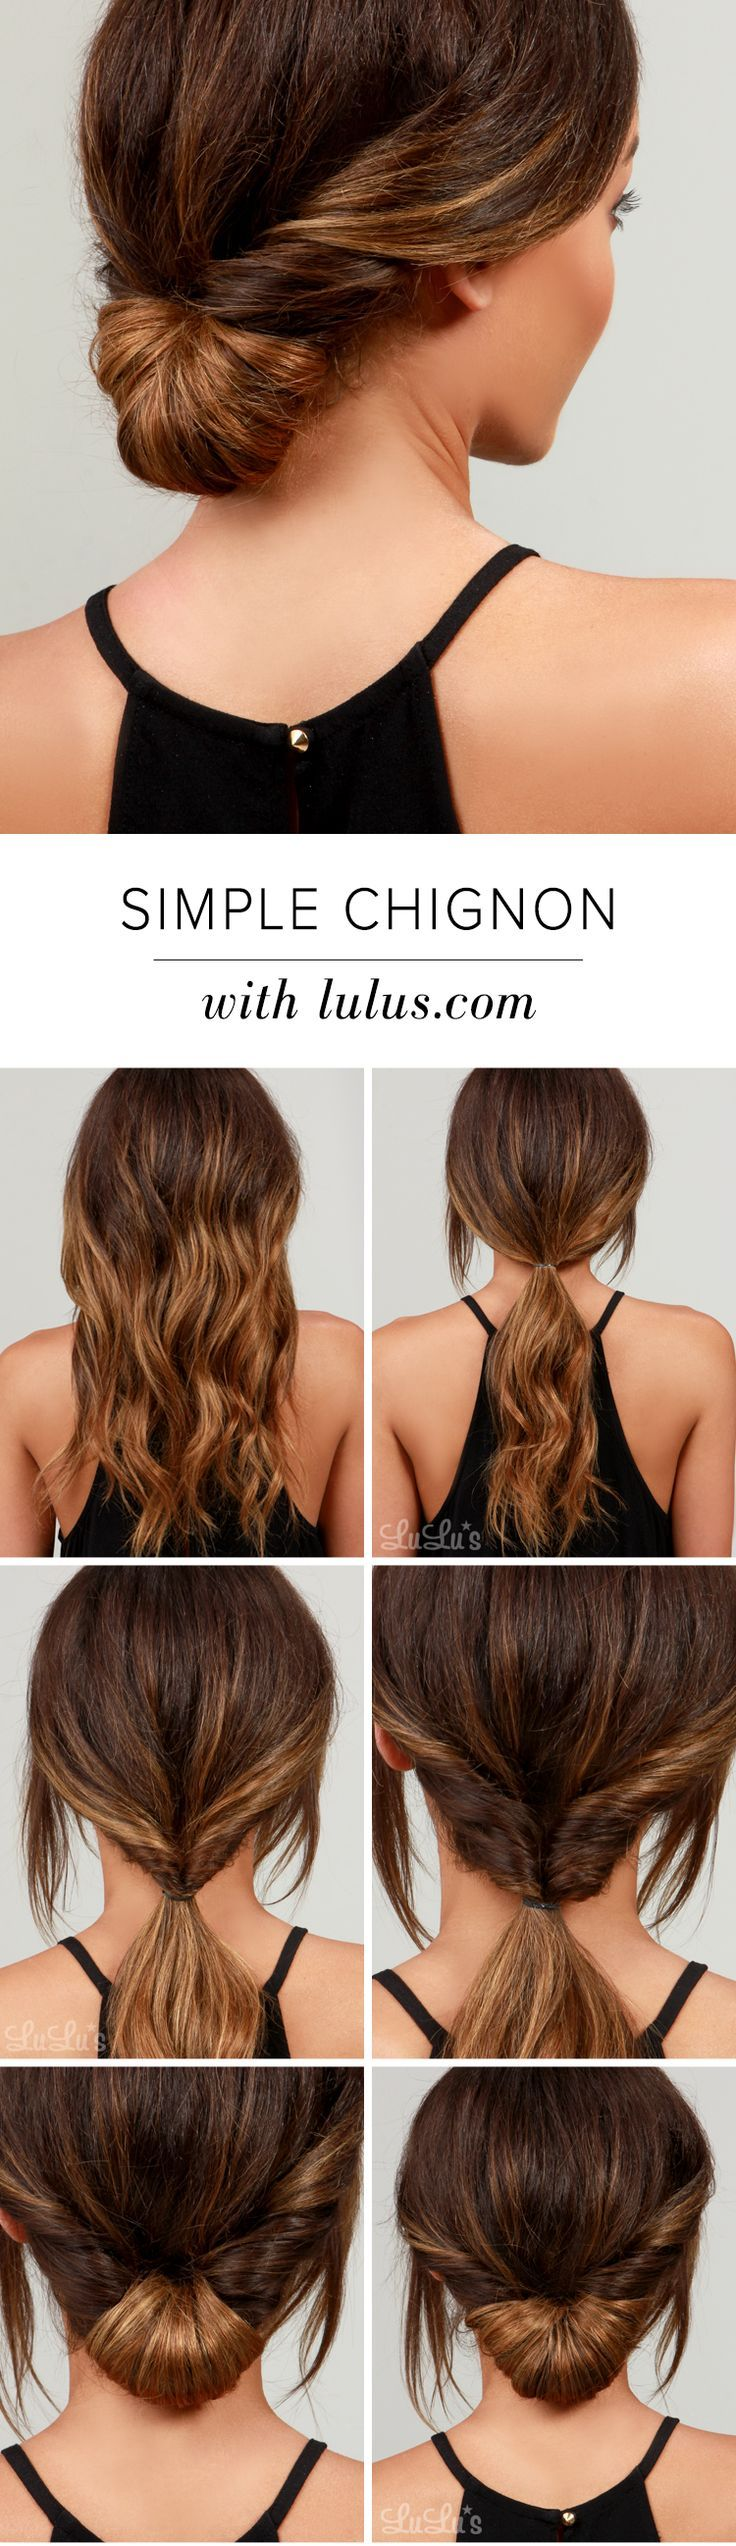 simple chignon tutorial